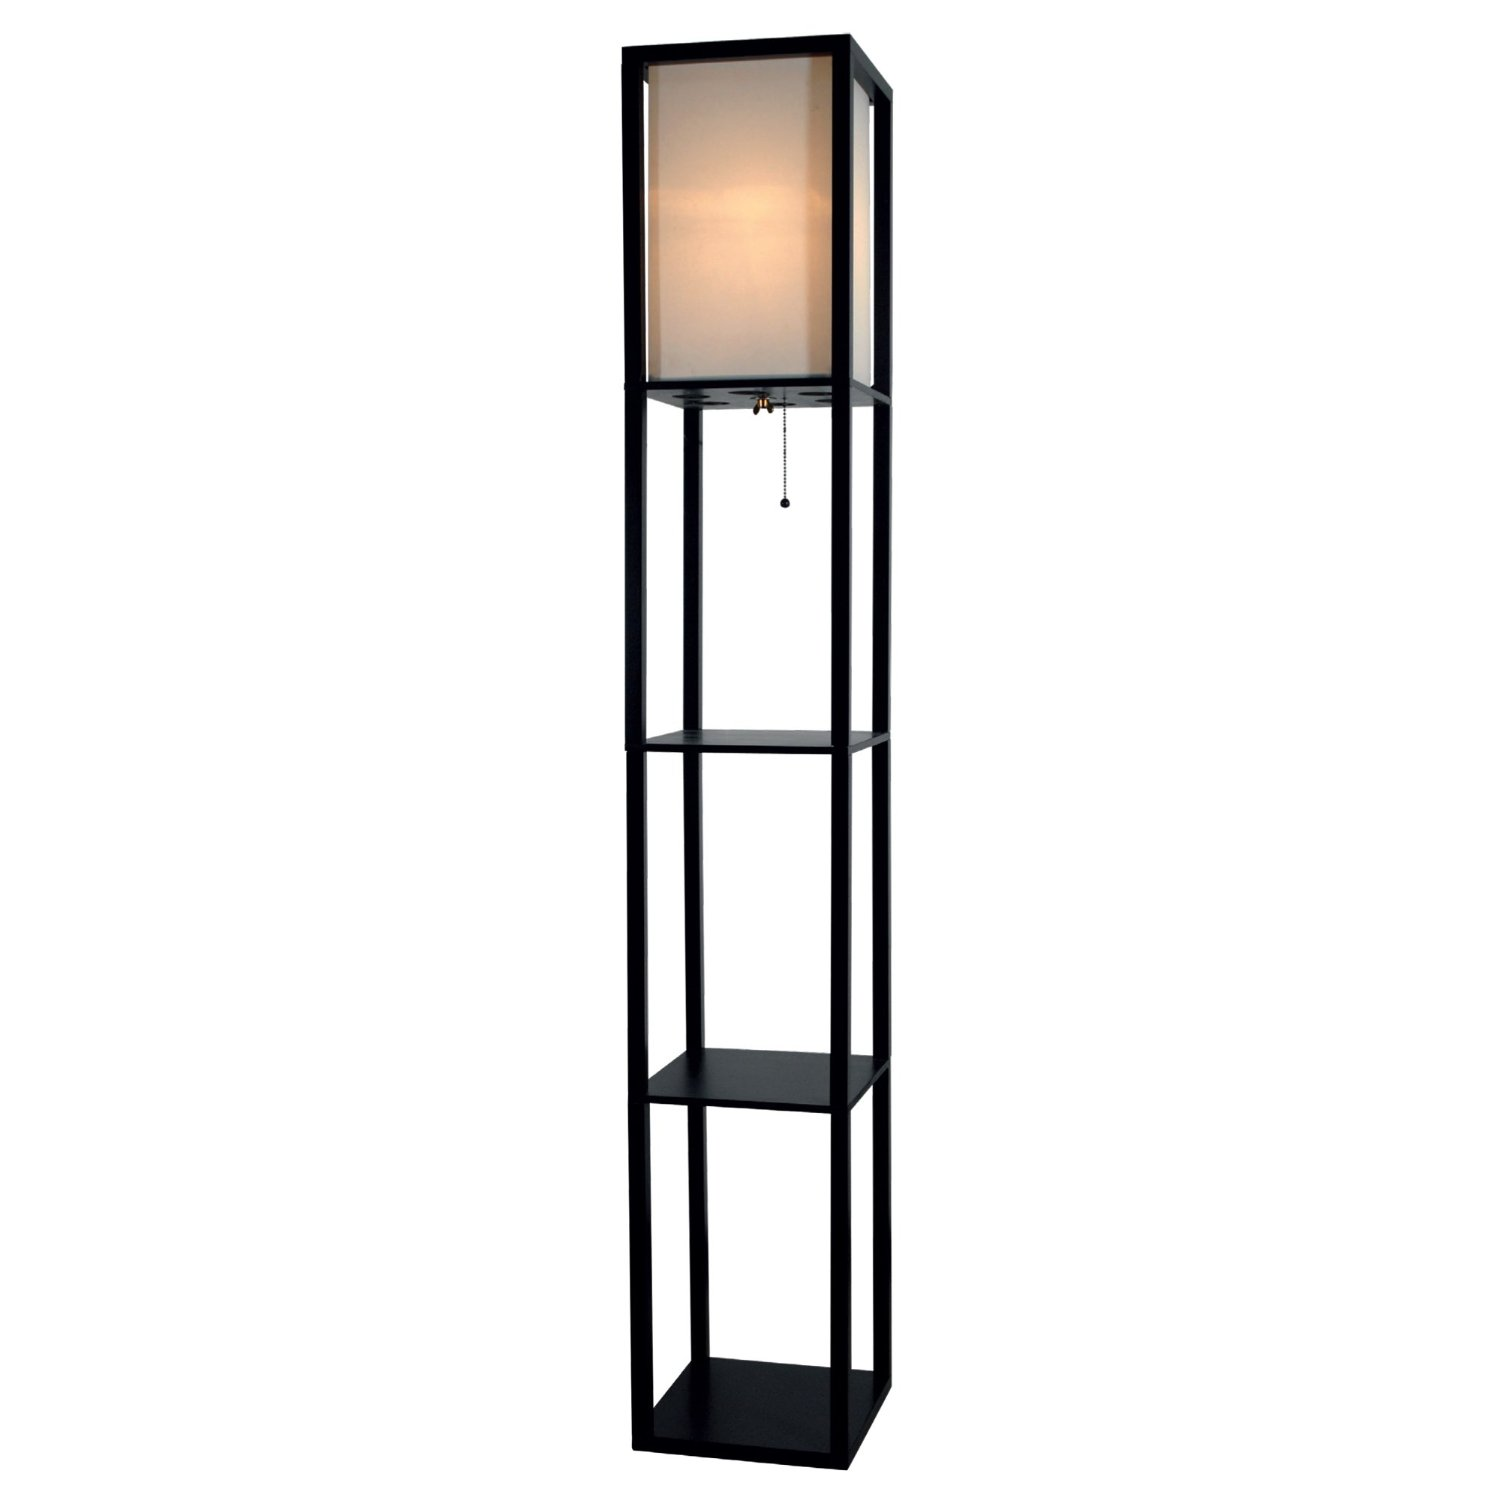 Total Fab Modern And Contemporary Floor Lamps With Shelves